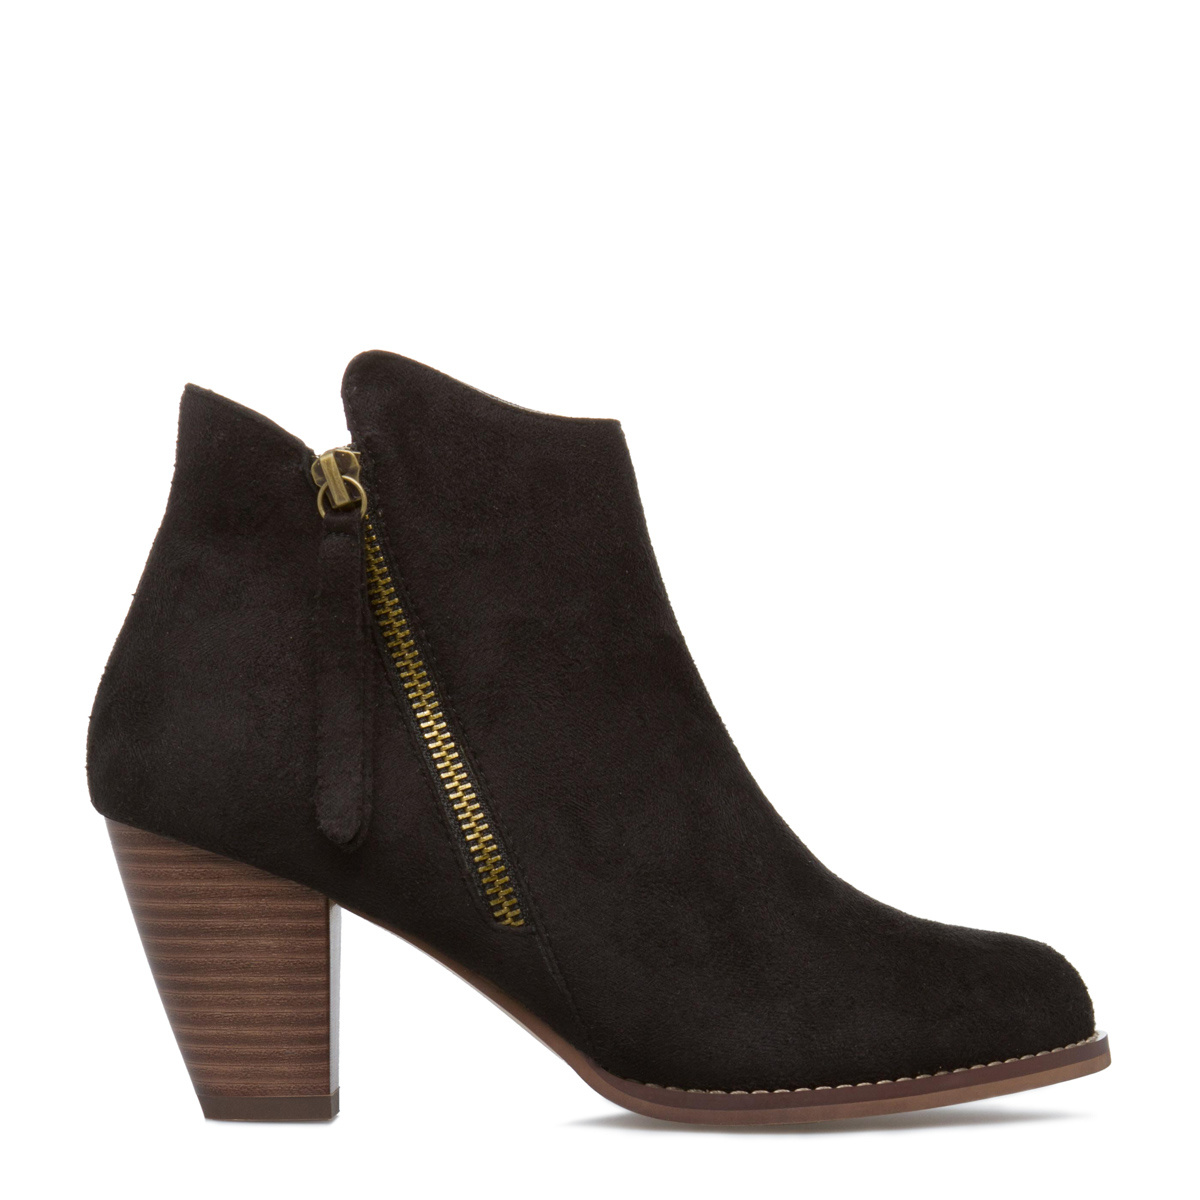 Brinley Co. Women's Ankle Wide Width Multi Strap Boots See Details Product - Brinley Co. Women's Faux Suede Geometric Laser Cut Side Split Stacked Wood Heel Booties.